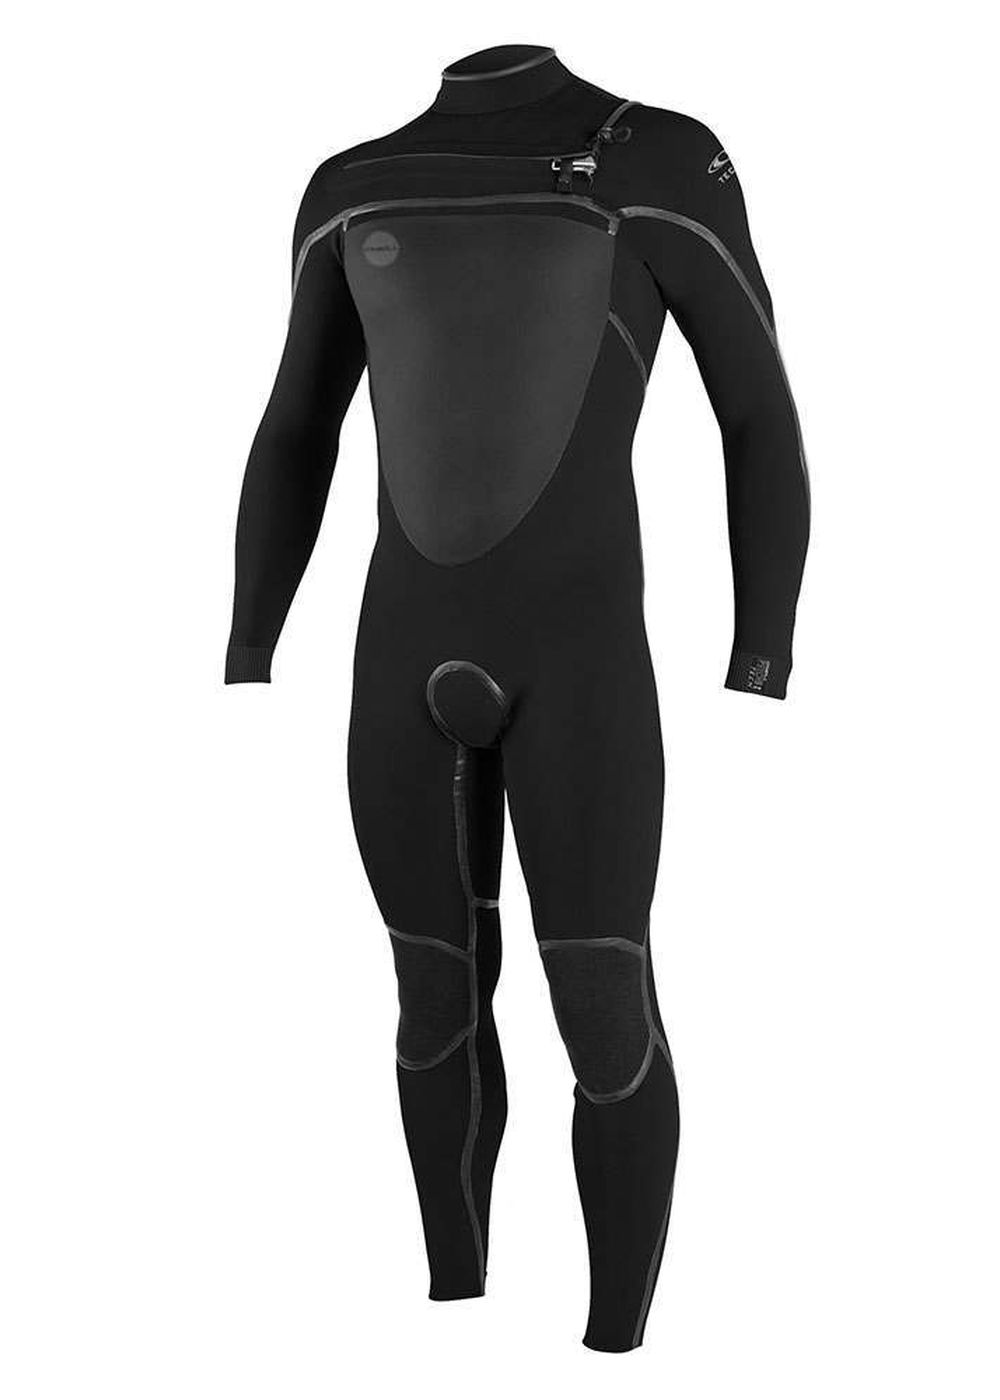 Oneill Psycho Tech Fz 5/4 Wetsuit 2018 Black Picture